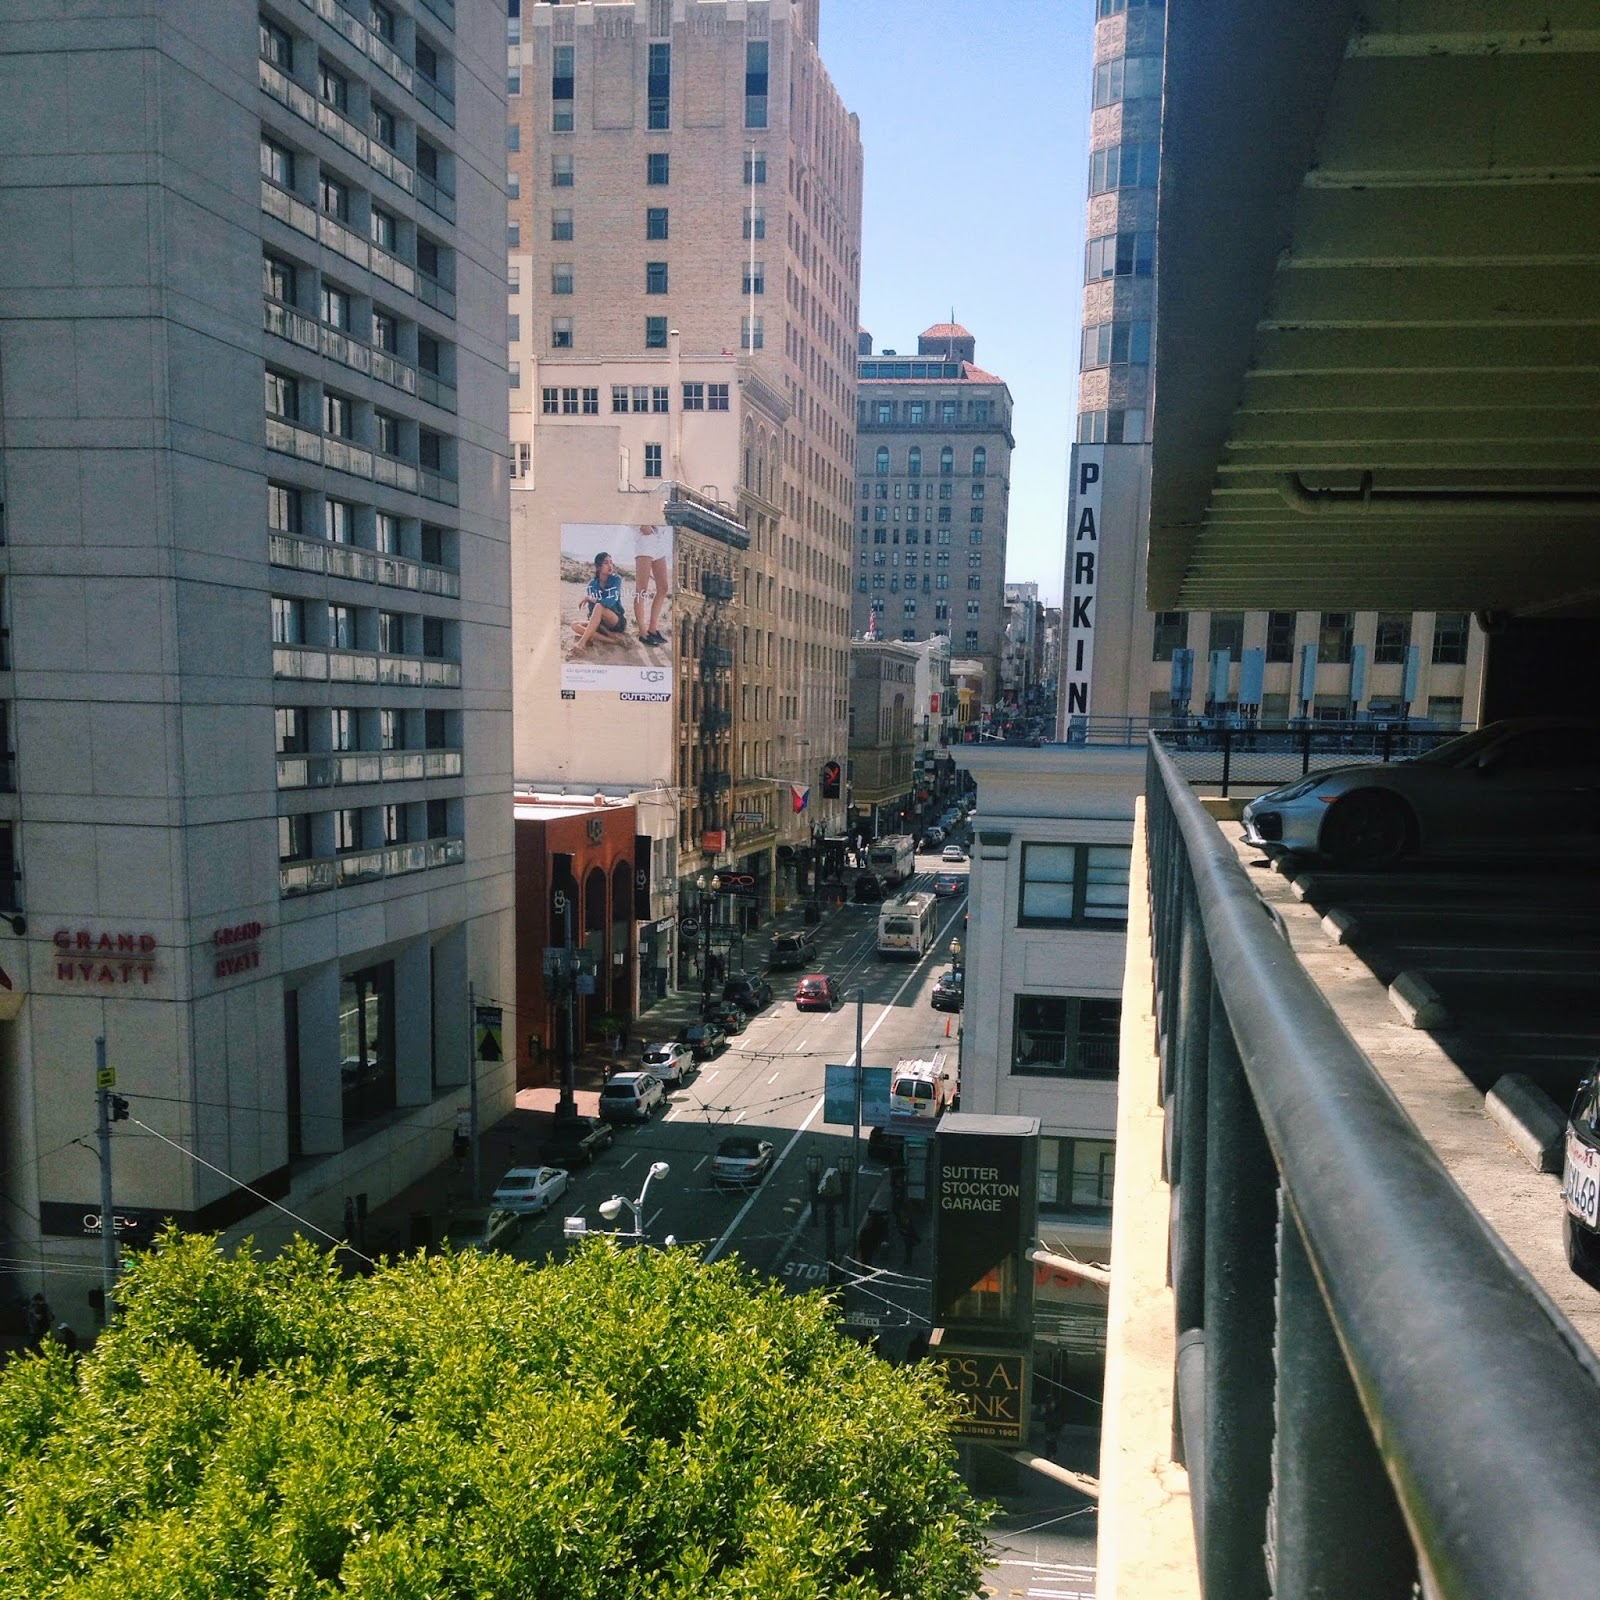 San Francisco Street View from above